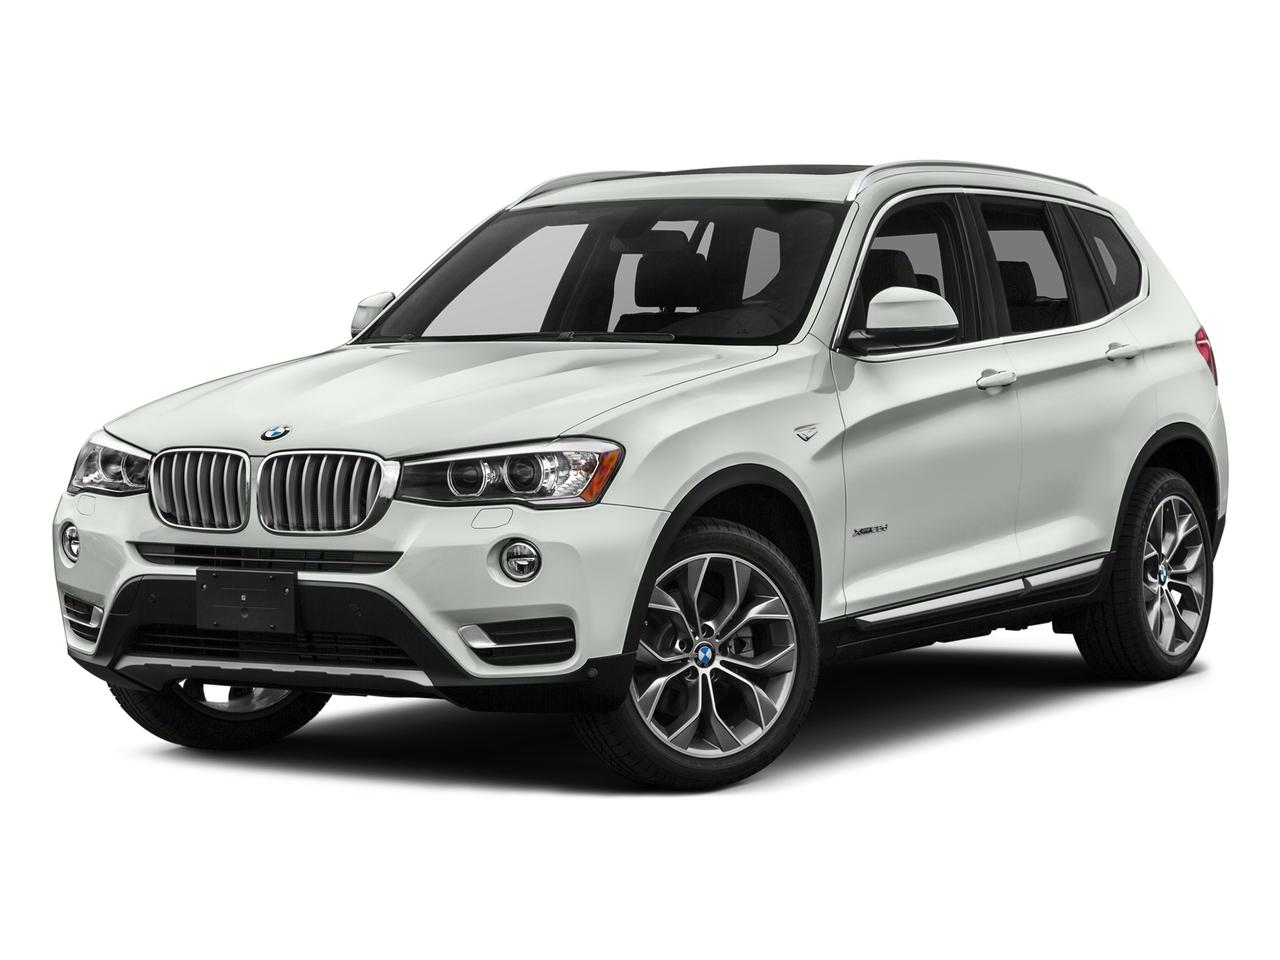 2017 BMW X3 sDrive28i Vehicle Photo in Grapevine, TX 76051